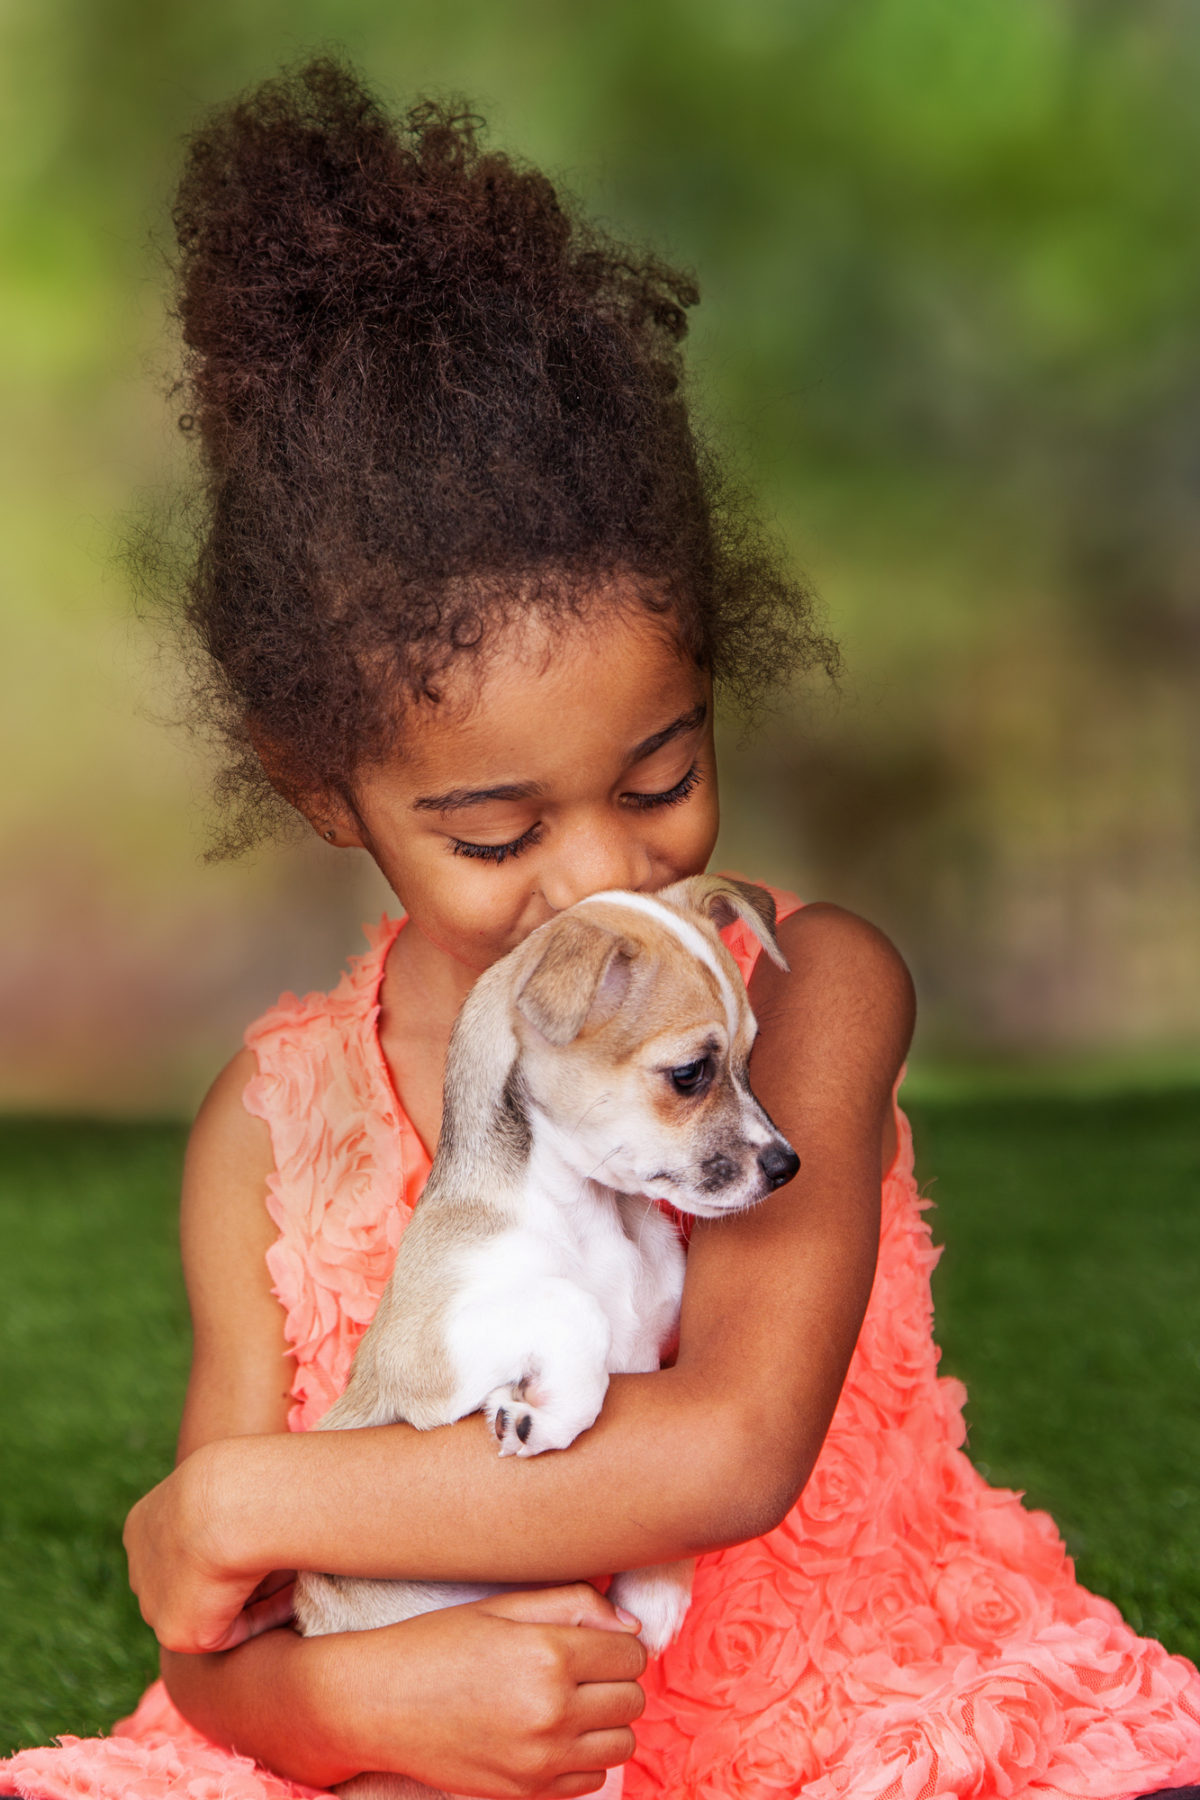 Dogs and Children: How to Make Sure They Get Along